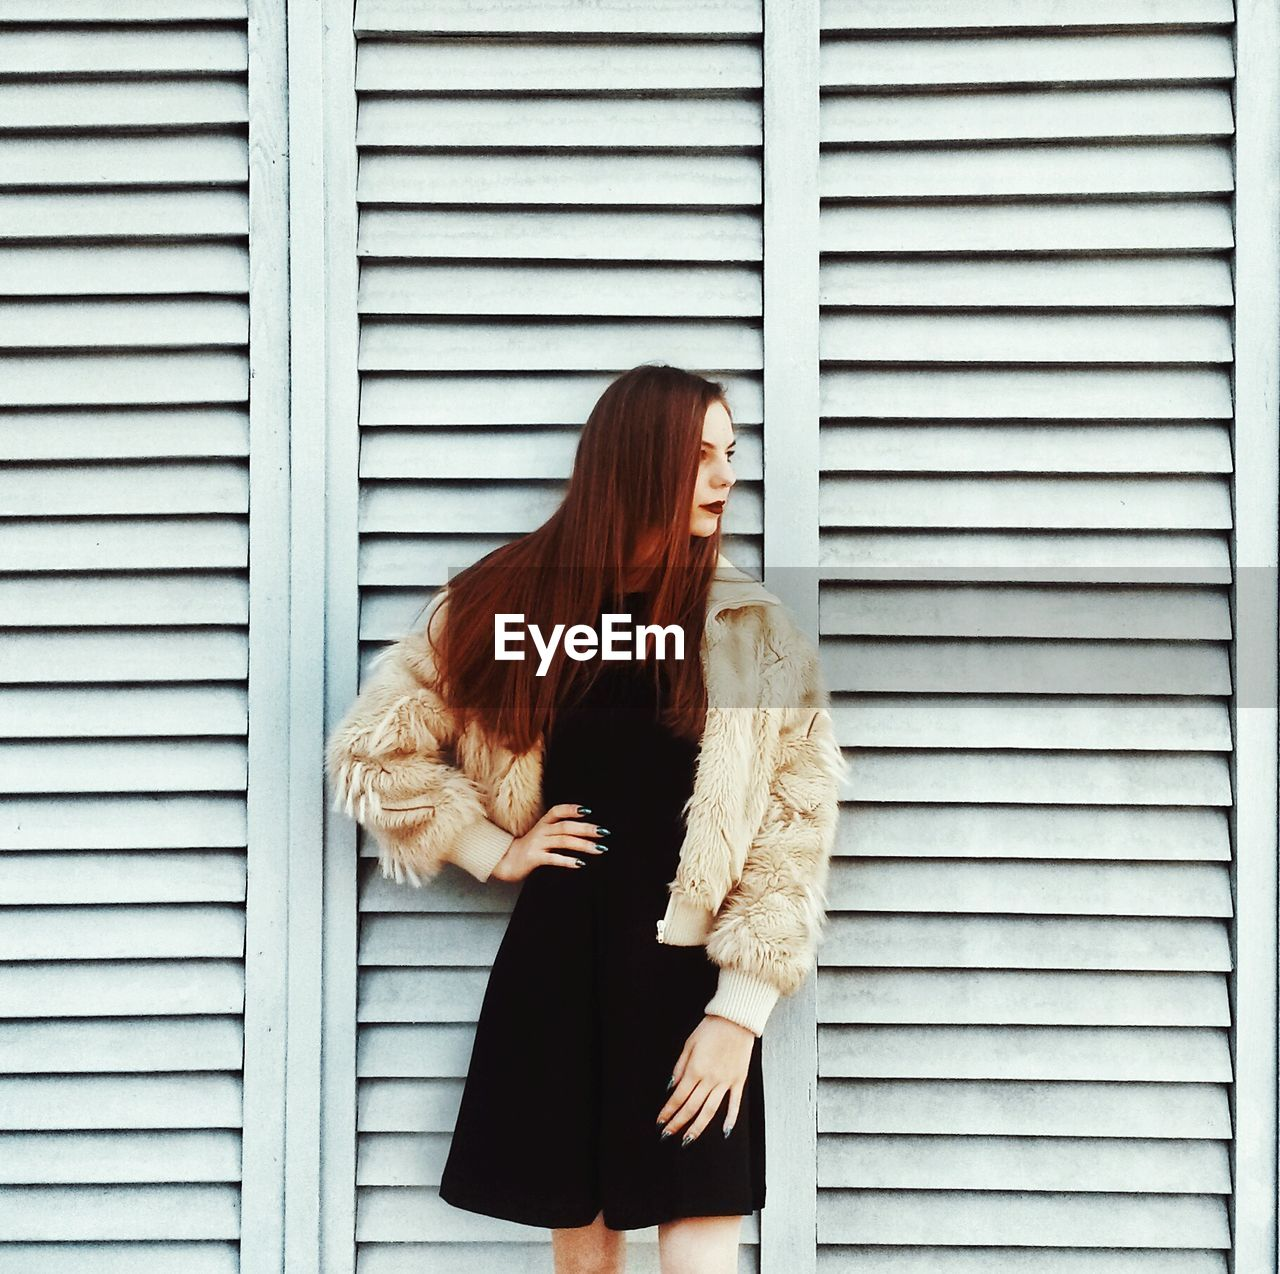 Fashionable Young Woman Standing Against Shutter